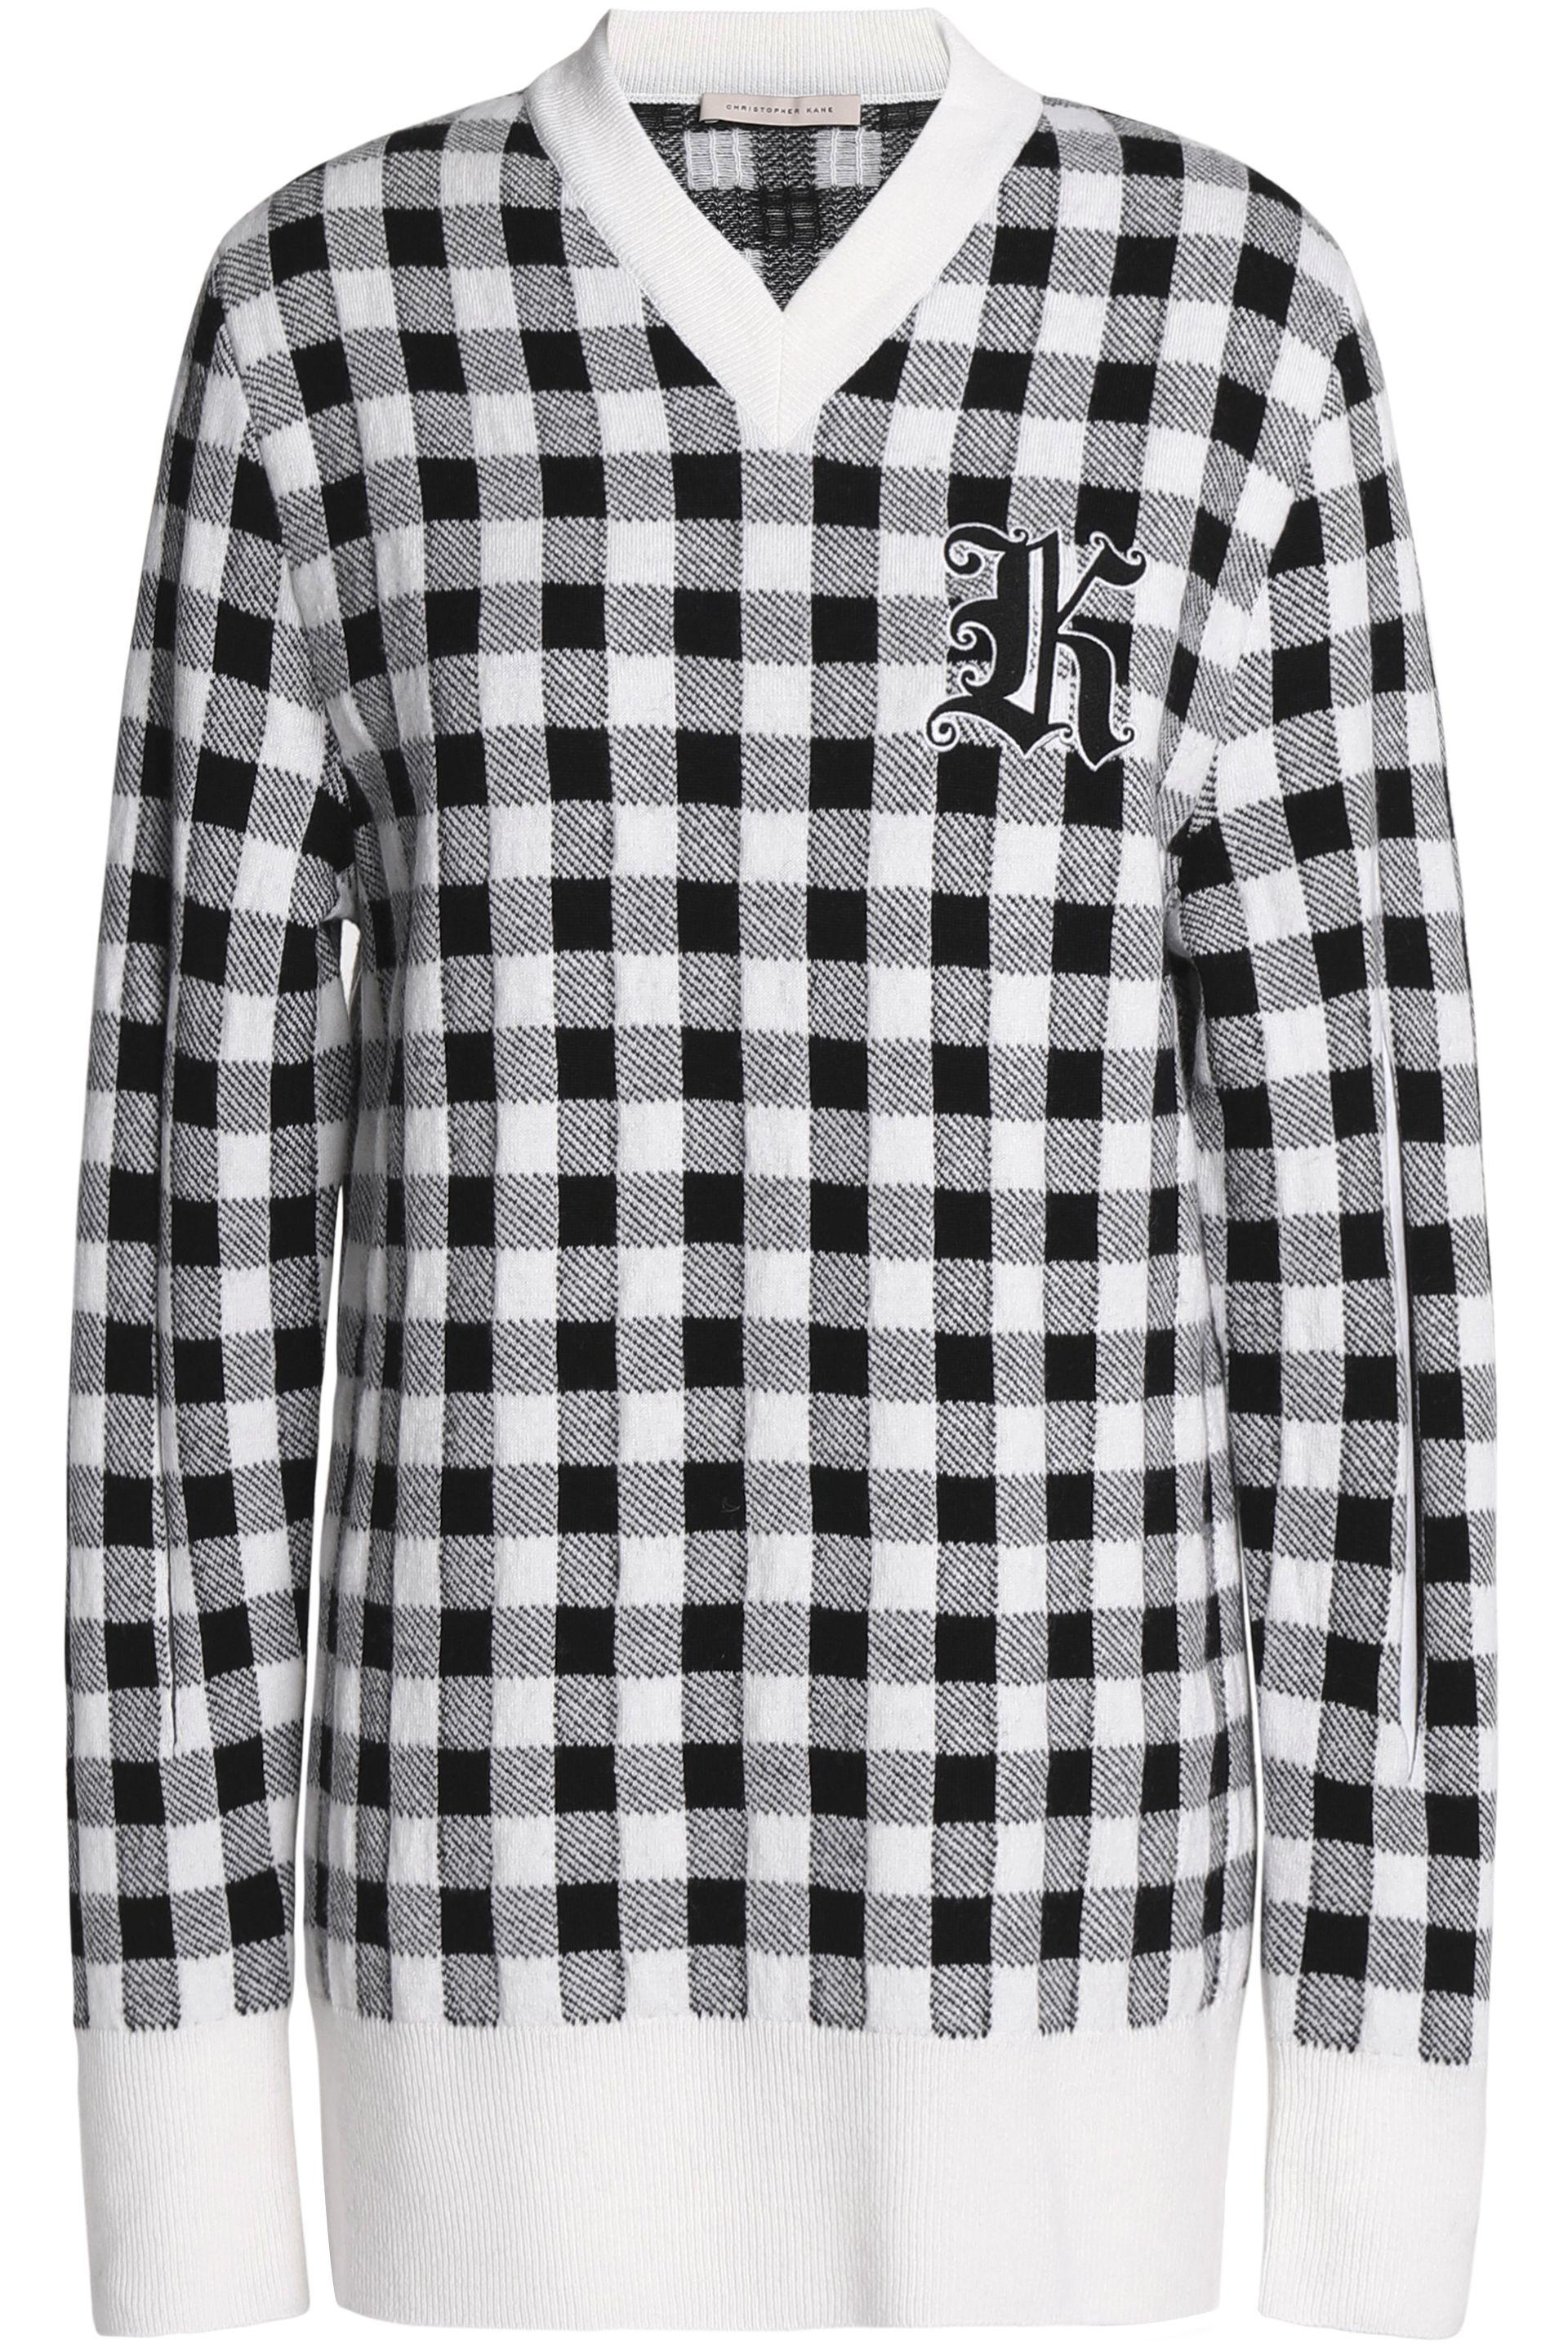 Christopher Kane Woman Appliquéd Checked Wool And Cashmere-blend Sweater Black Size XL Christopher Kane Discount Outlet Locations Cheap Sale How Much Best Sale MLjwI